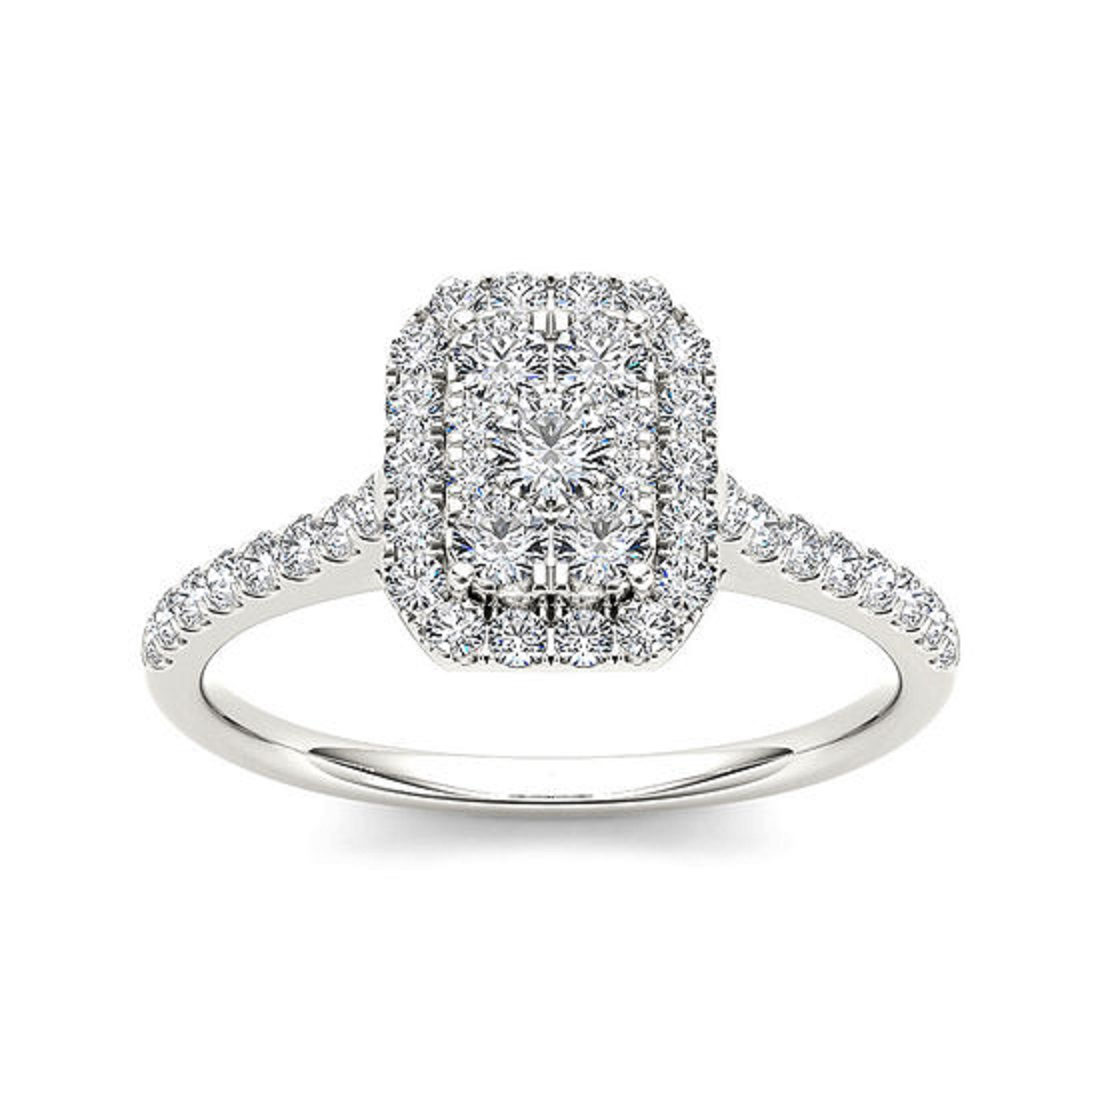 555c78e4c Engagement Rings | Bridal and Wedding Jewelry | JCPenney